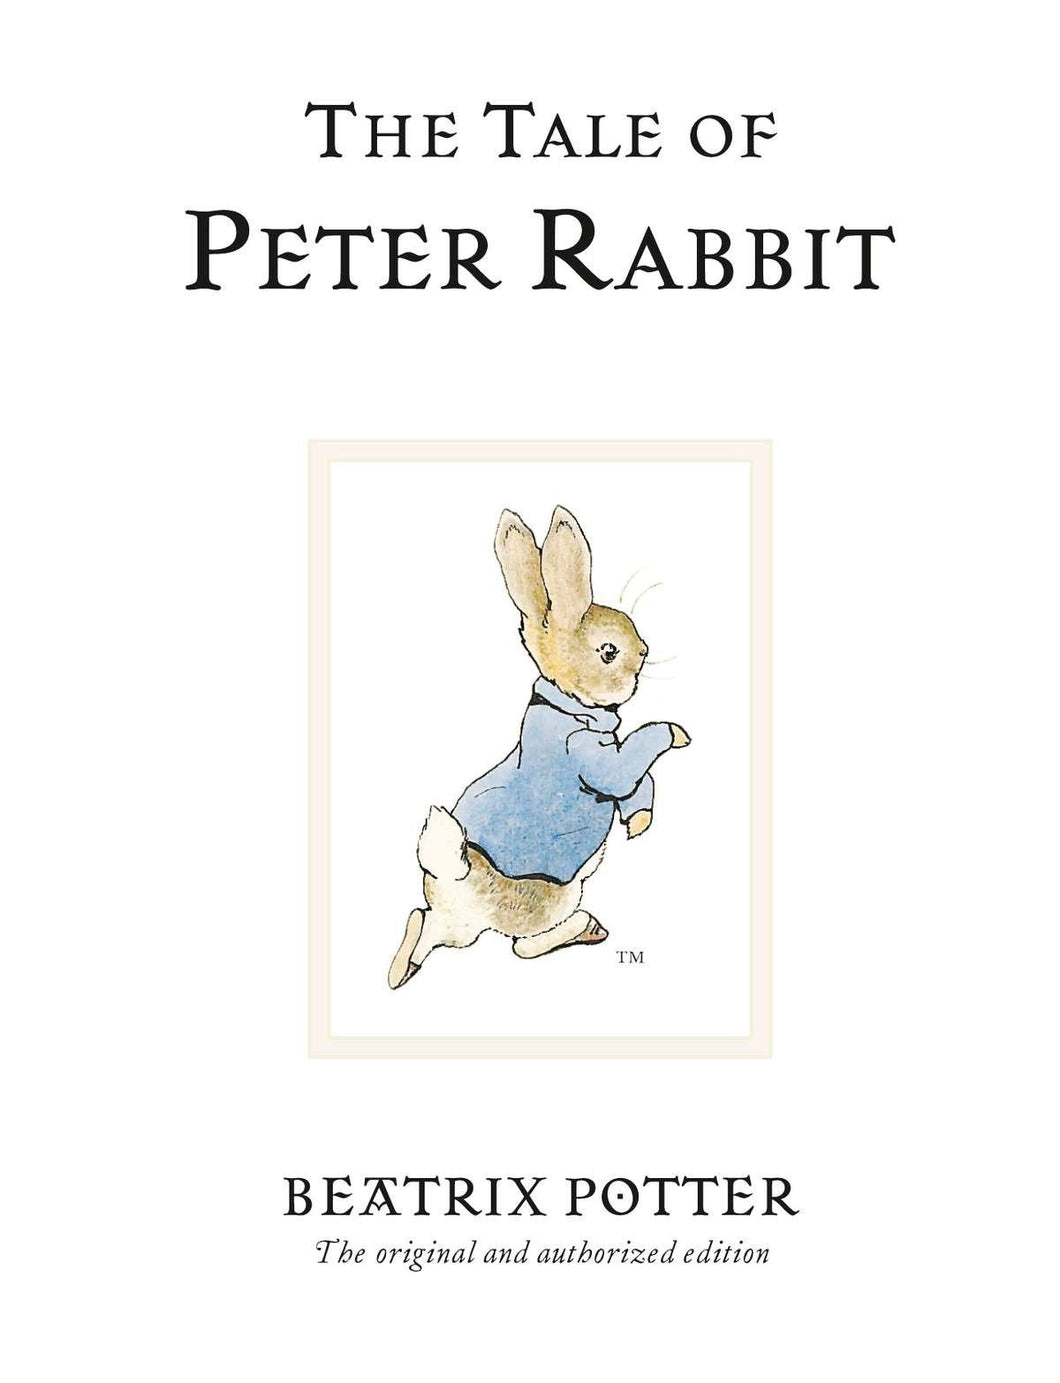 The World of Beatrix Potter: Peter Rabbit Books